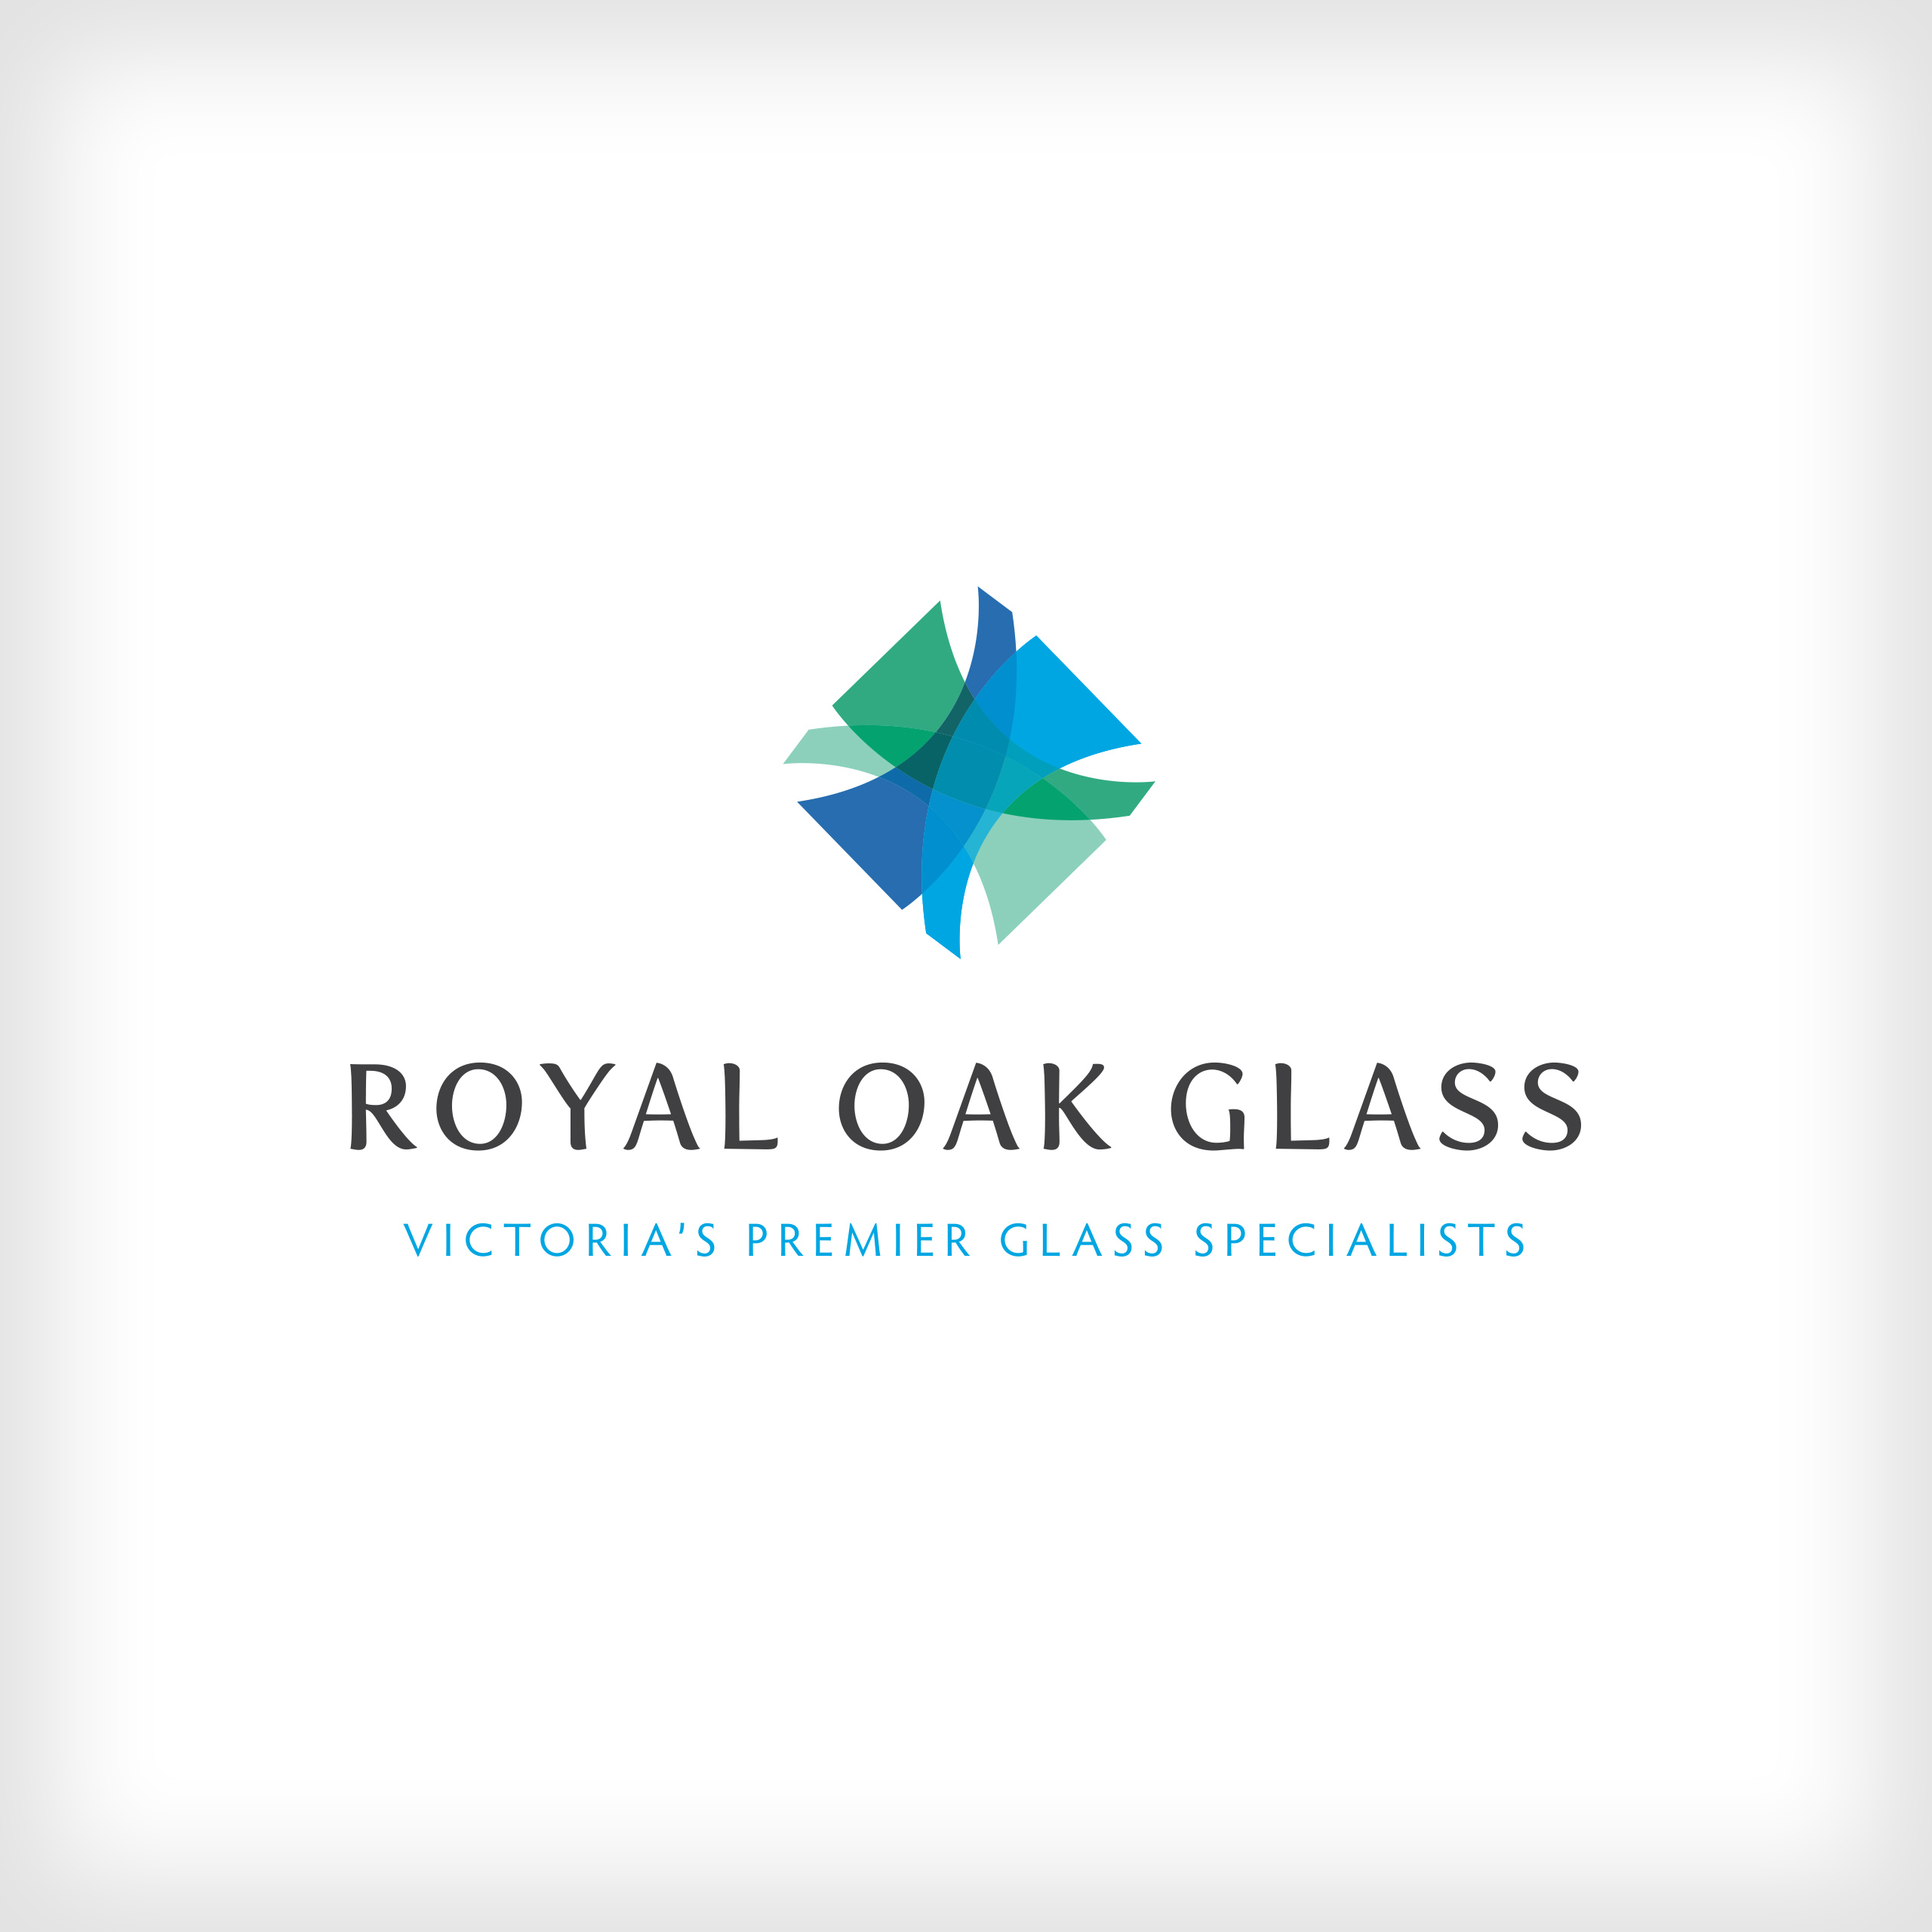 Royal Oak Glass - eclipse360